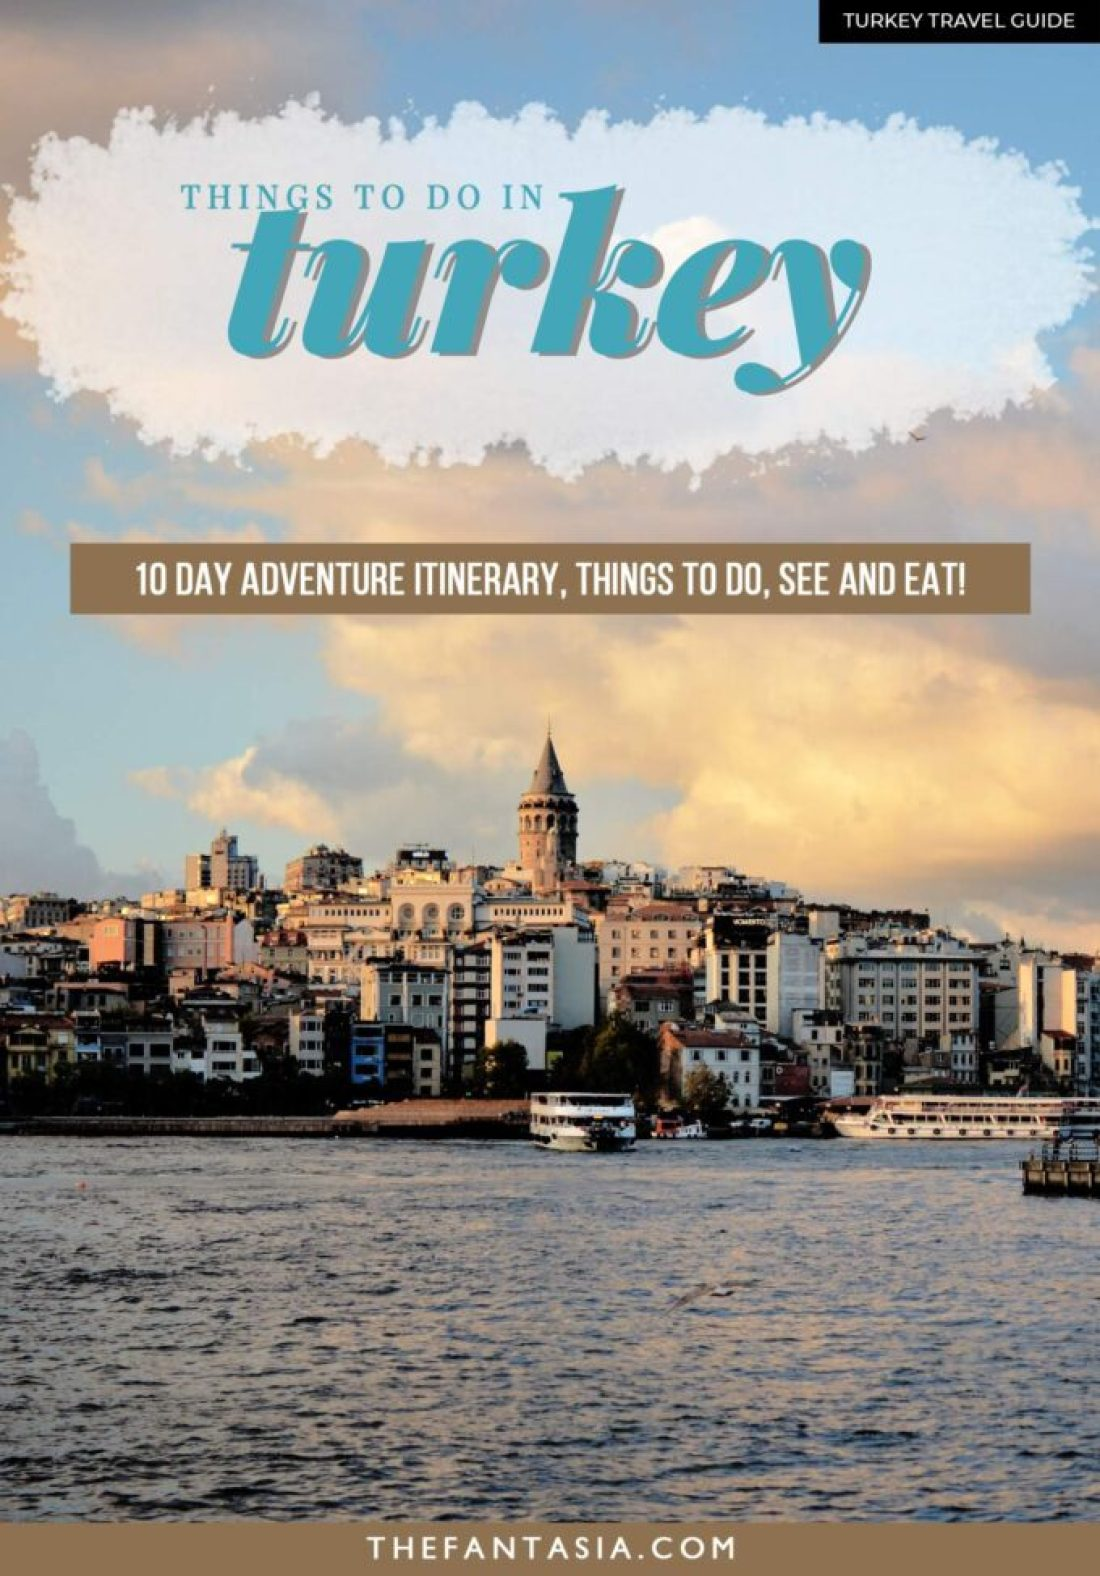 Few places in the world rave reviews all the time and Turkey is one of those. Here are my list of things to do in Turkey to help you plan your trip!